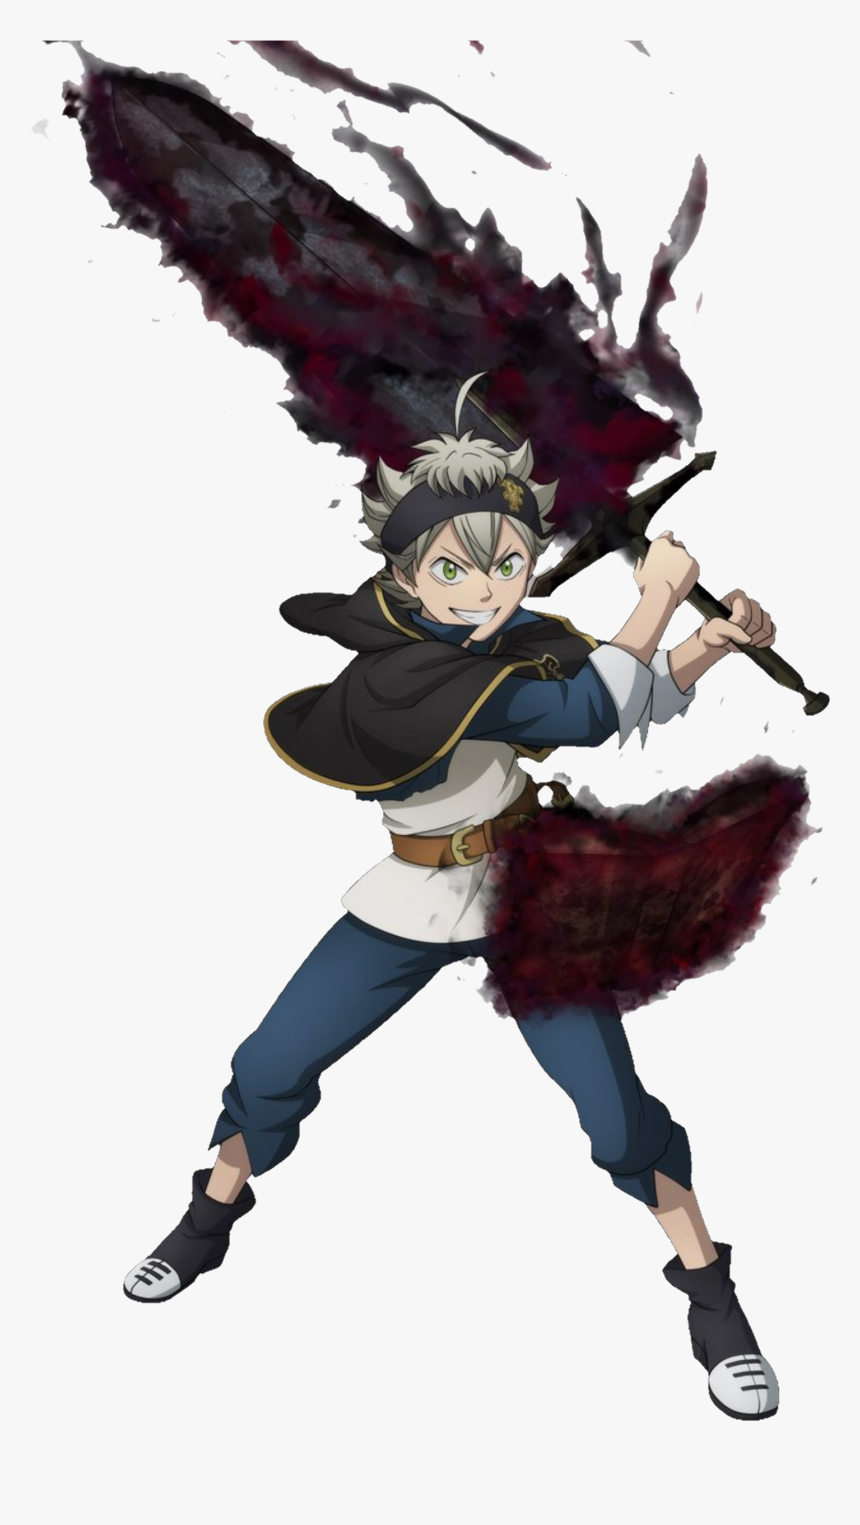 Asta Black Clover - Asta Demon Form Png, Transparent Png, Free Download